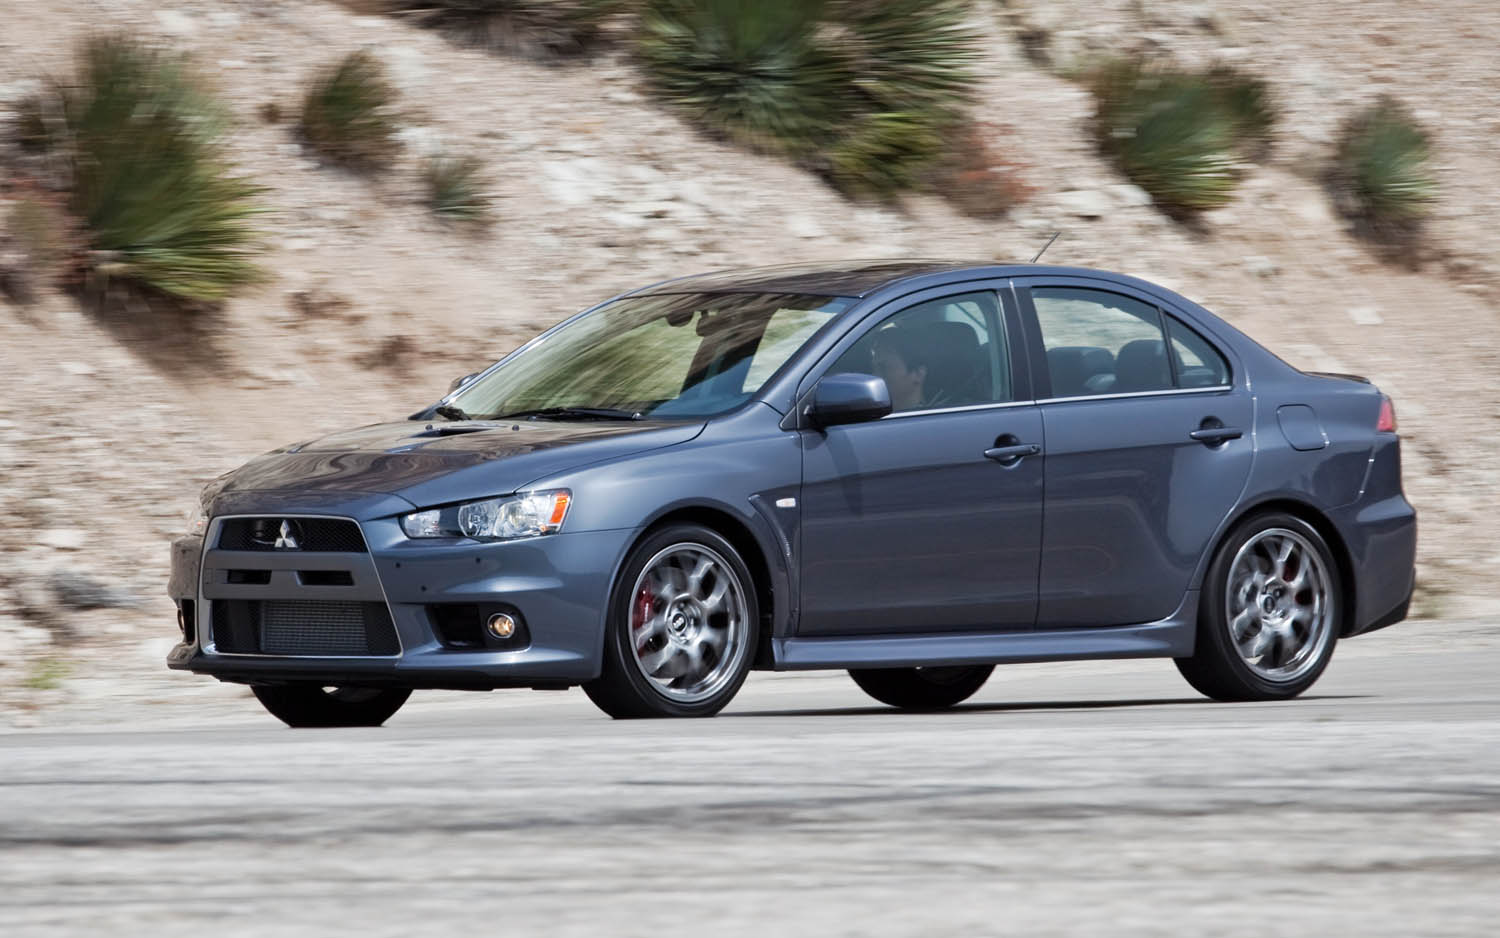 2013 Mitsubishi Lancer Evolution MR Touring Side View1